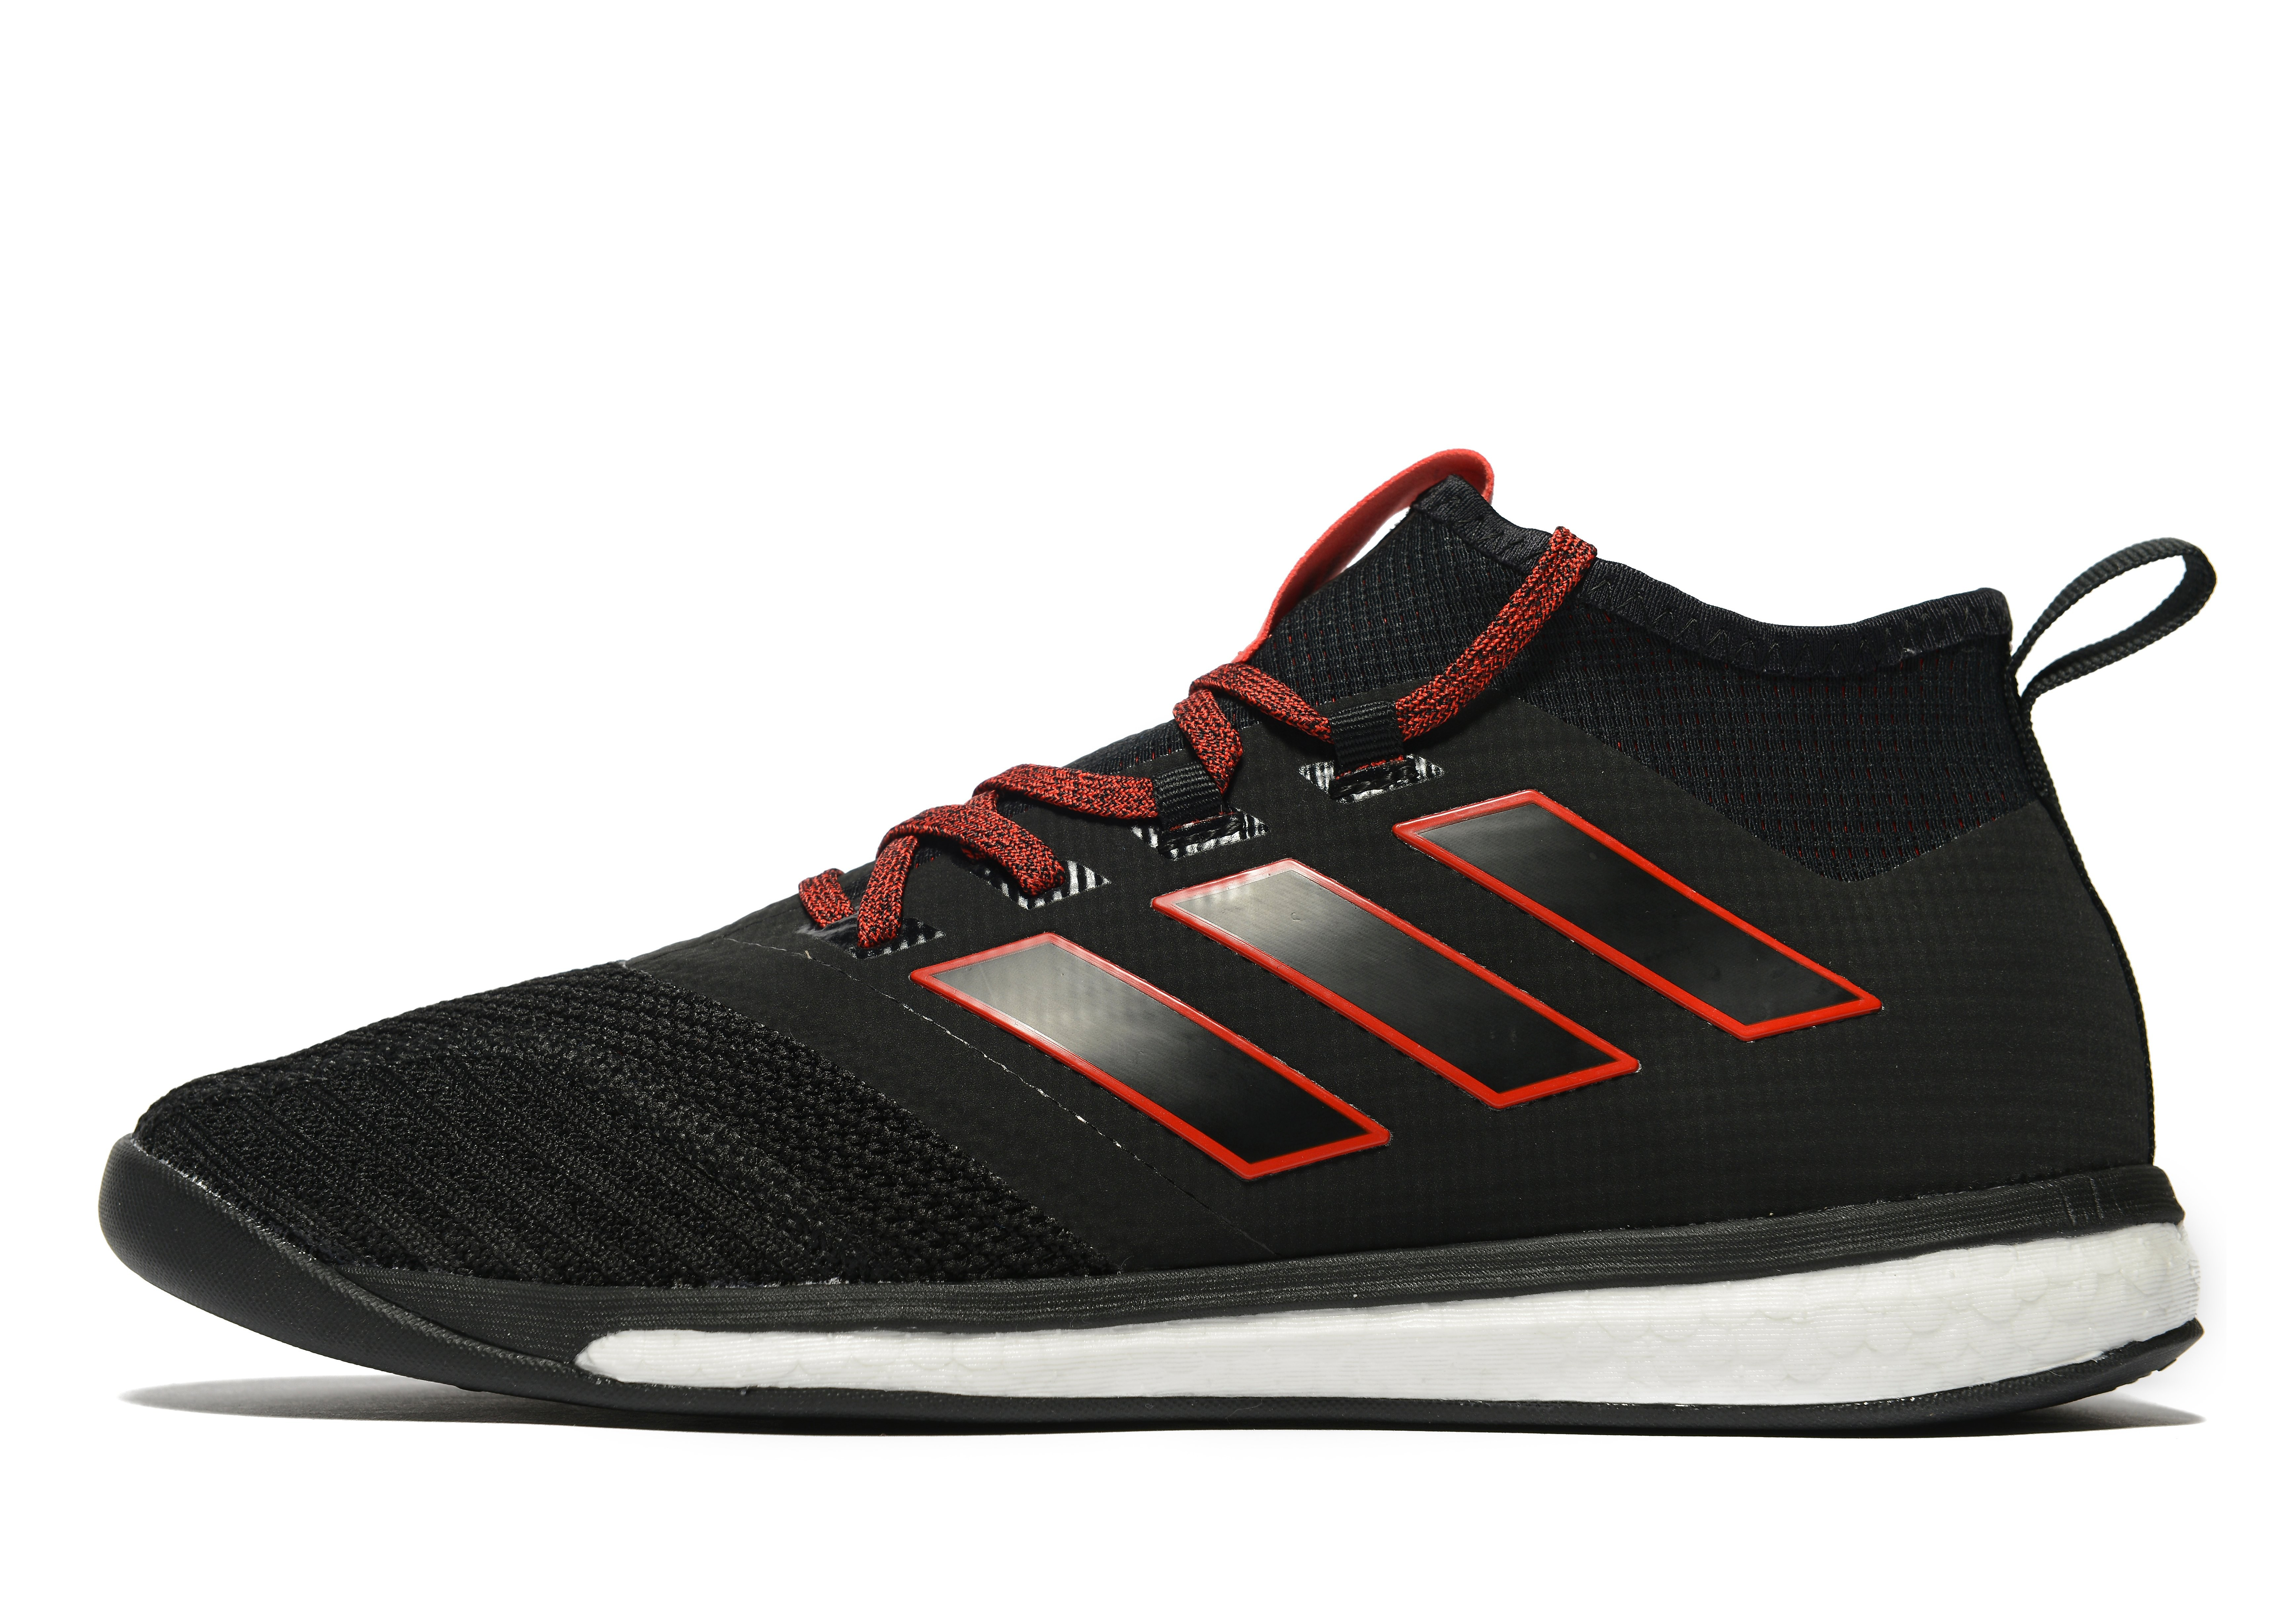 adidas Baskets ACE Tango 17.1 TR Homme